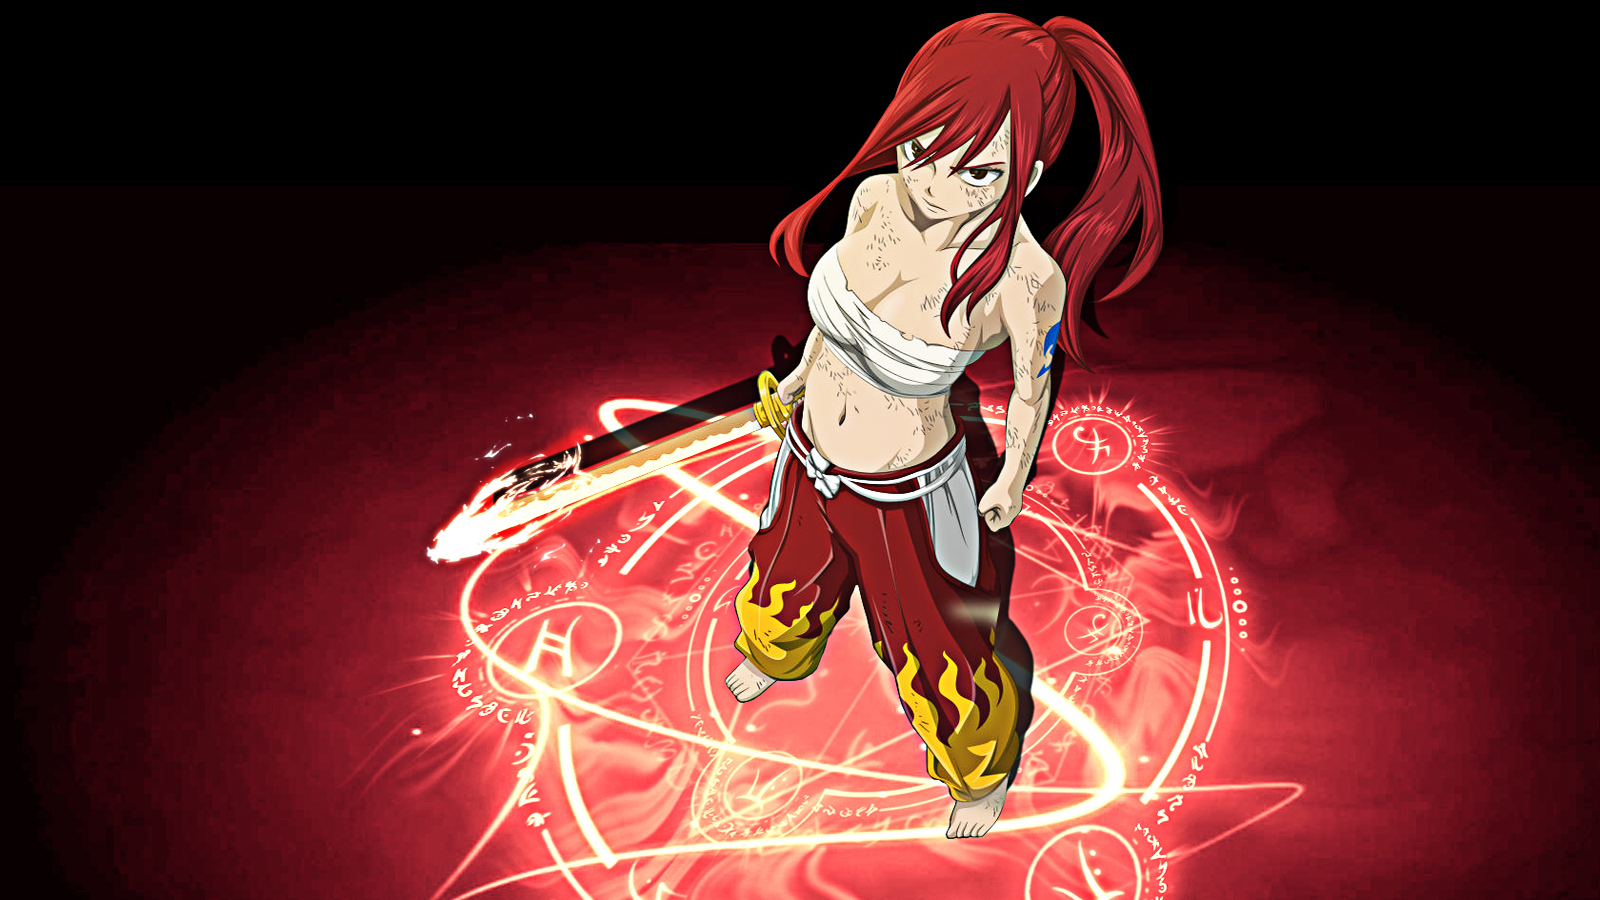 Erza Scarlet Anime Girl 0g Wallpaper HD 1600x900